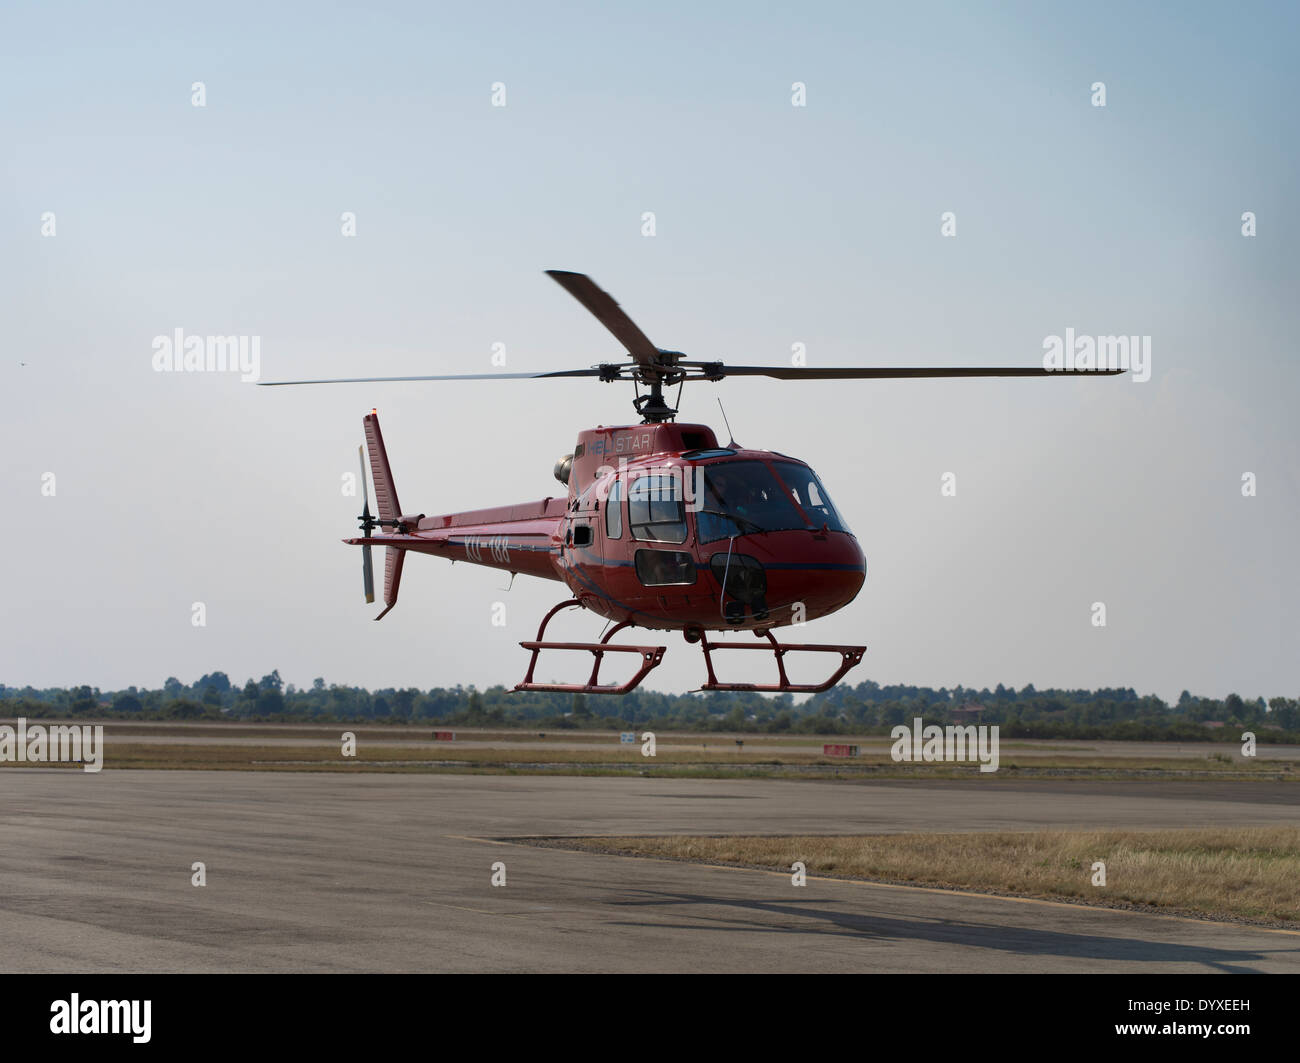 Helistar Helicopter at Angkor Wat - Siem Reap, Cambodia Stock Photo